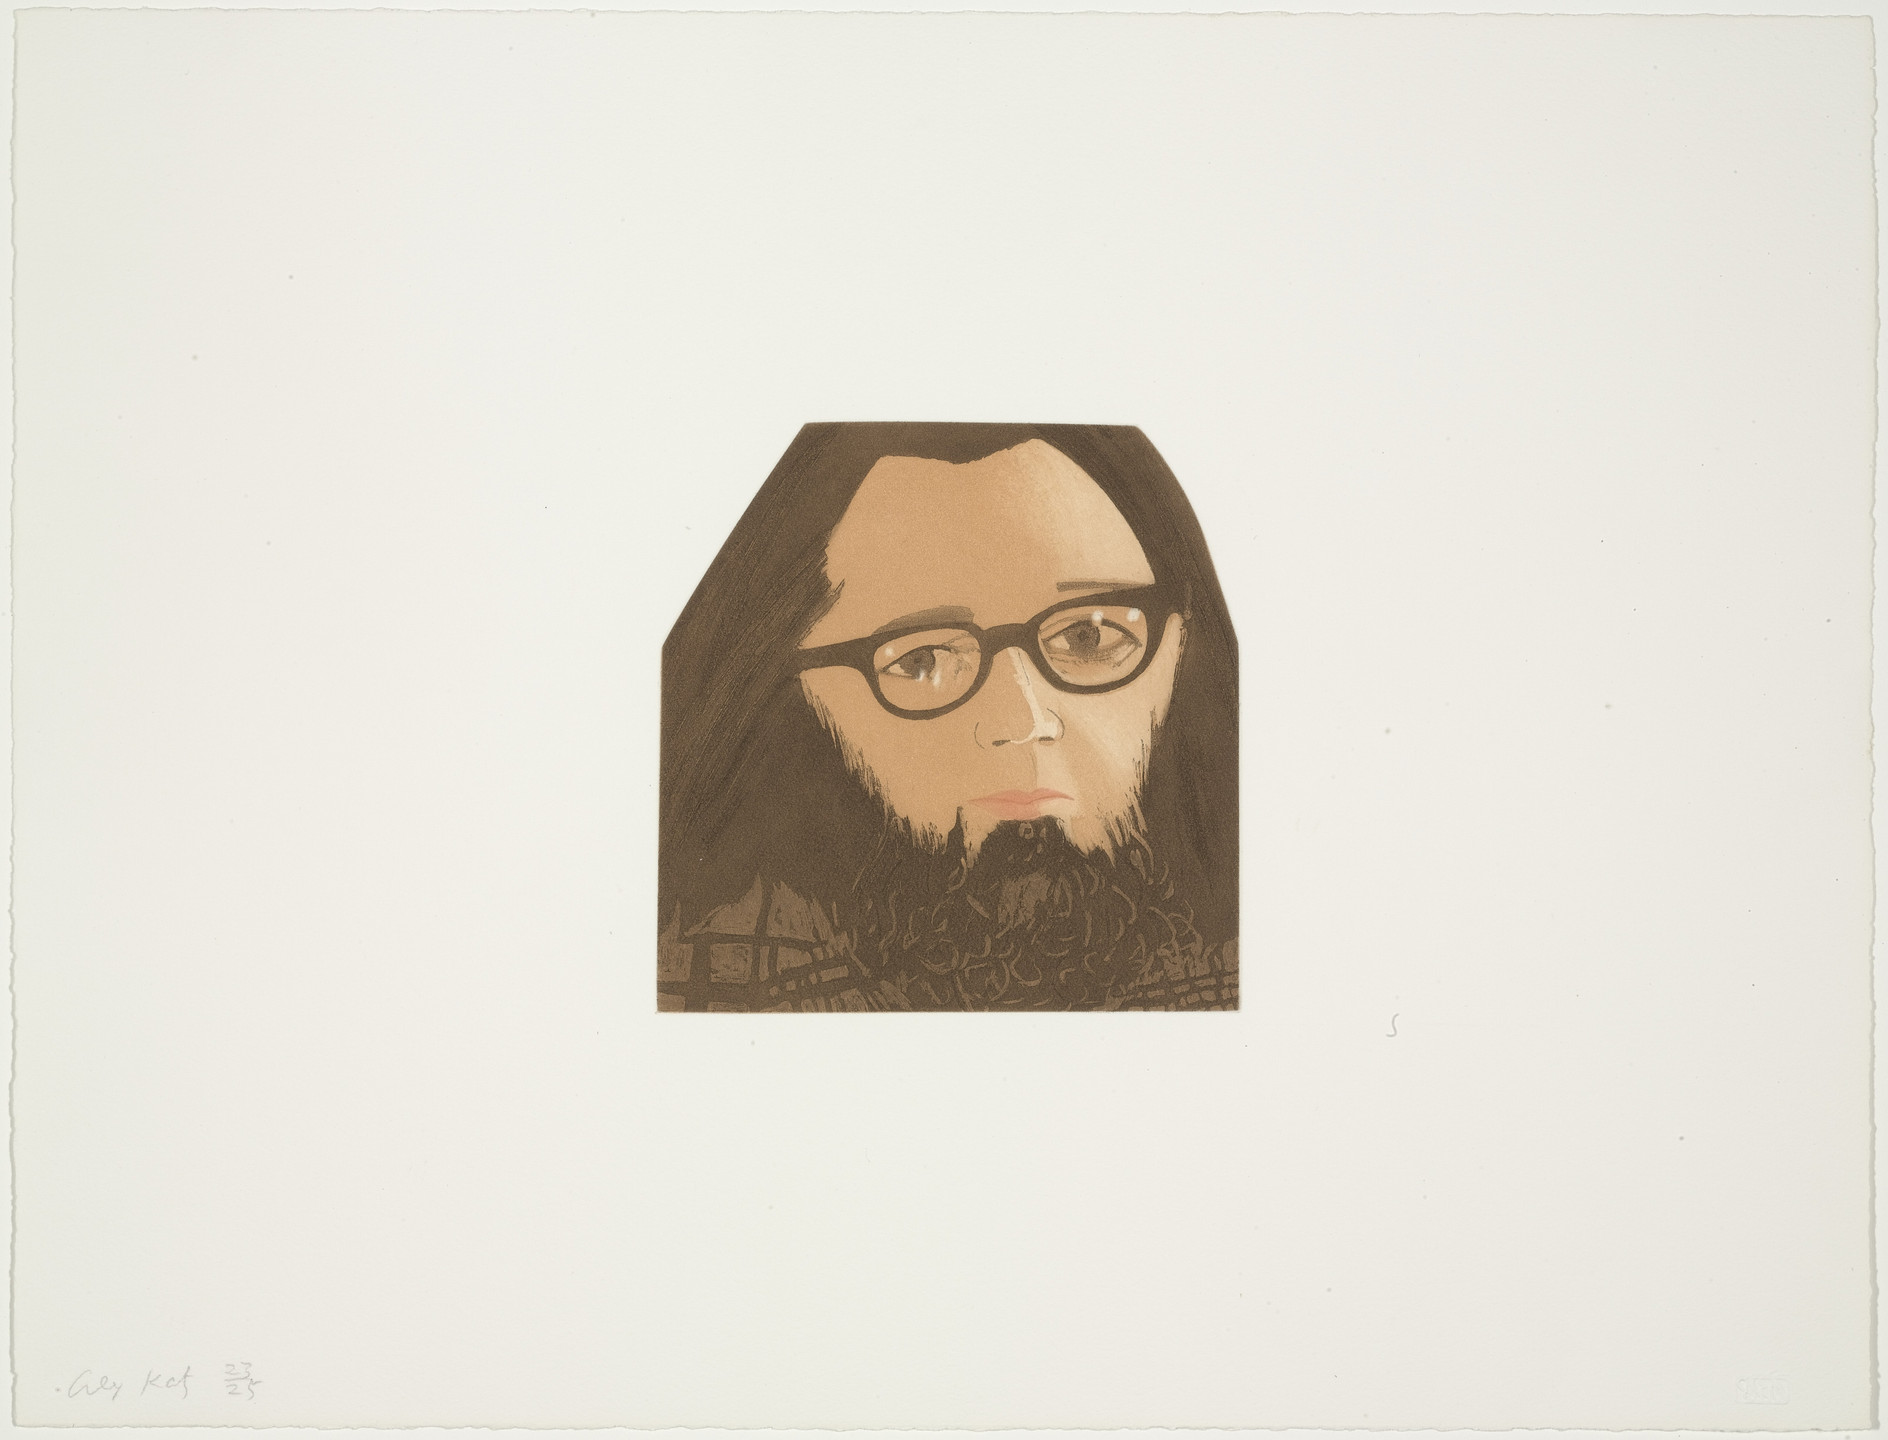 Alex Katz. Ted Berrigan from Face of the Poet. 1978